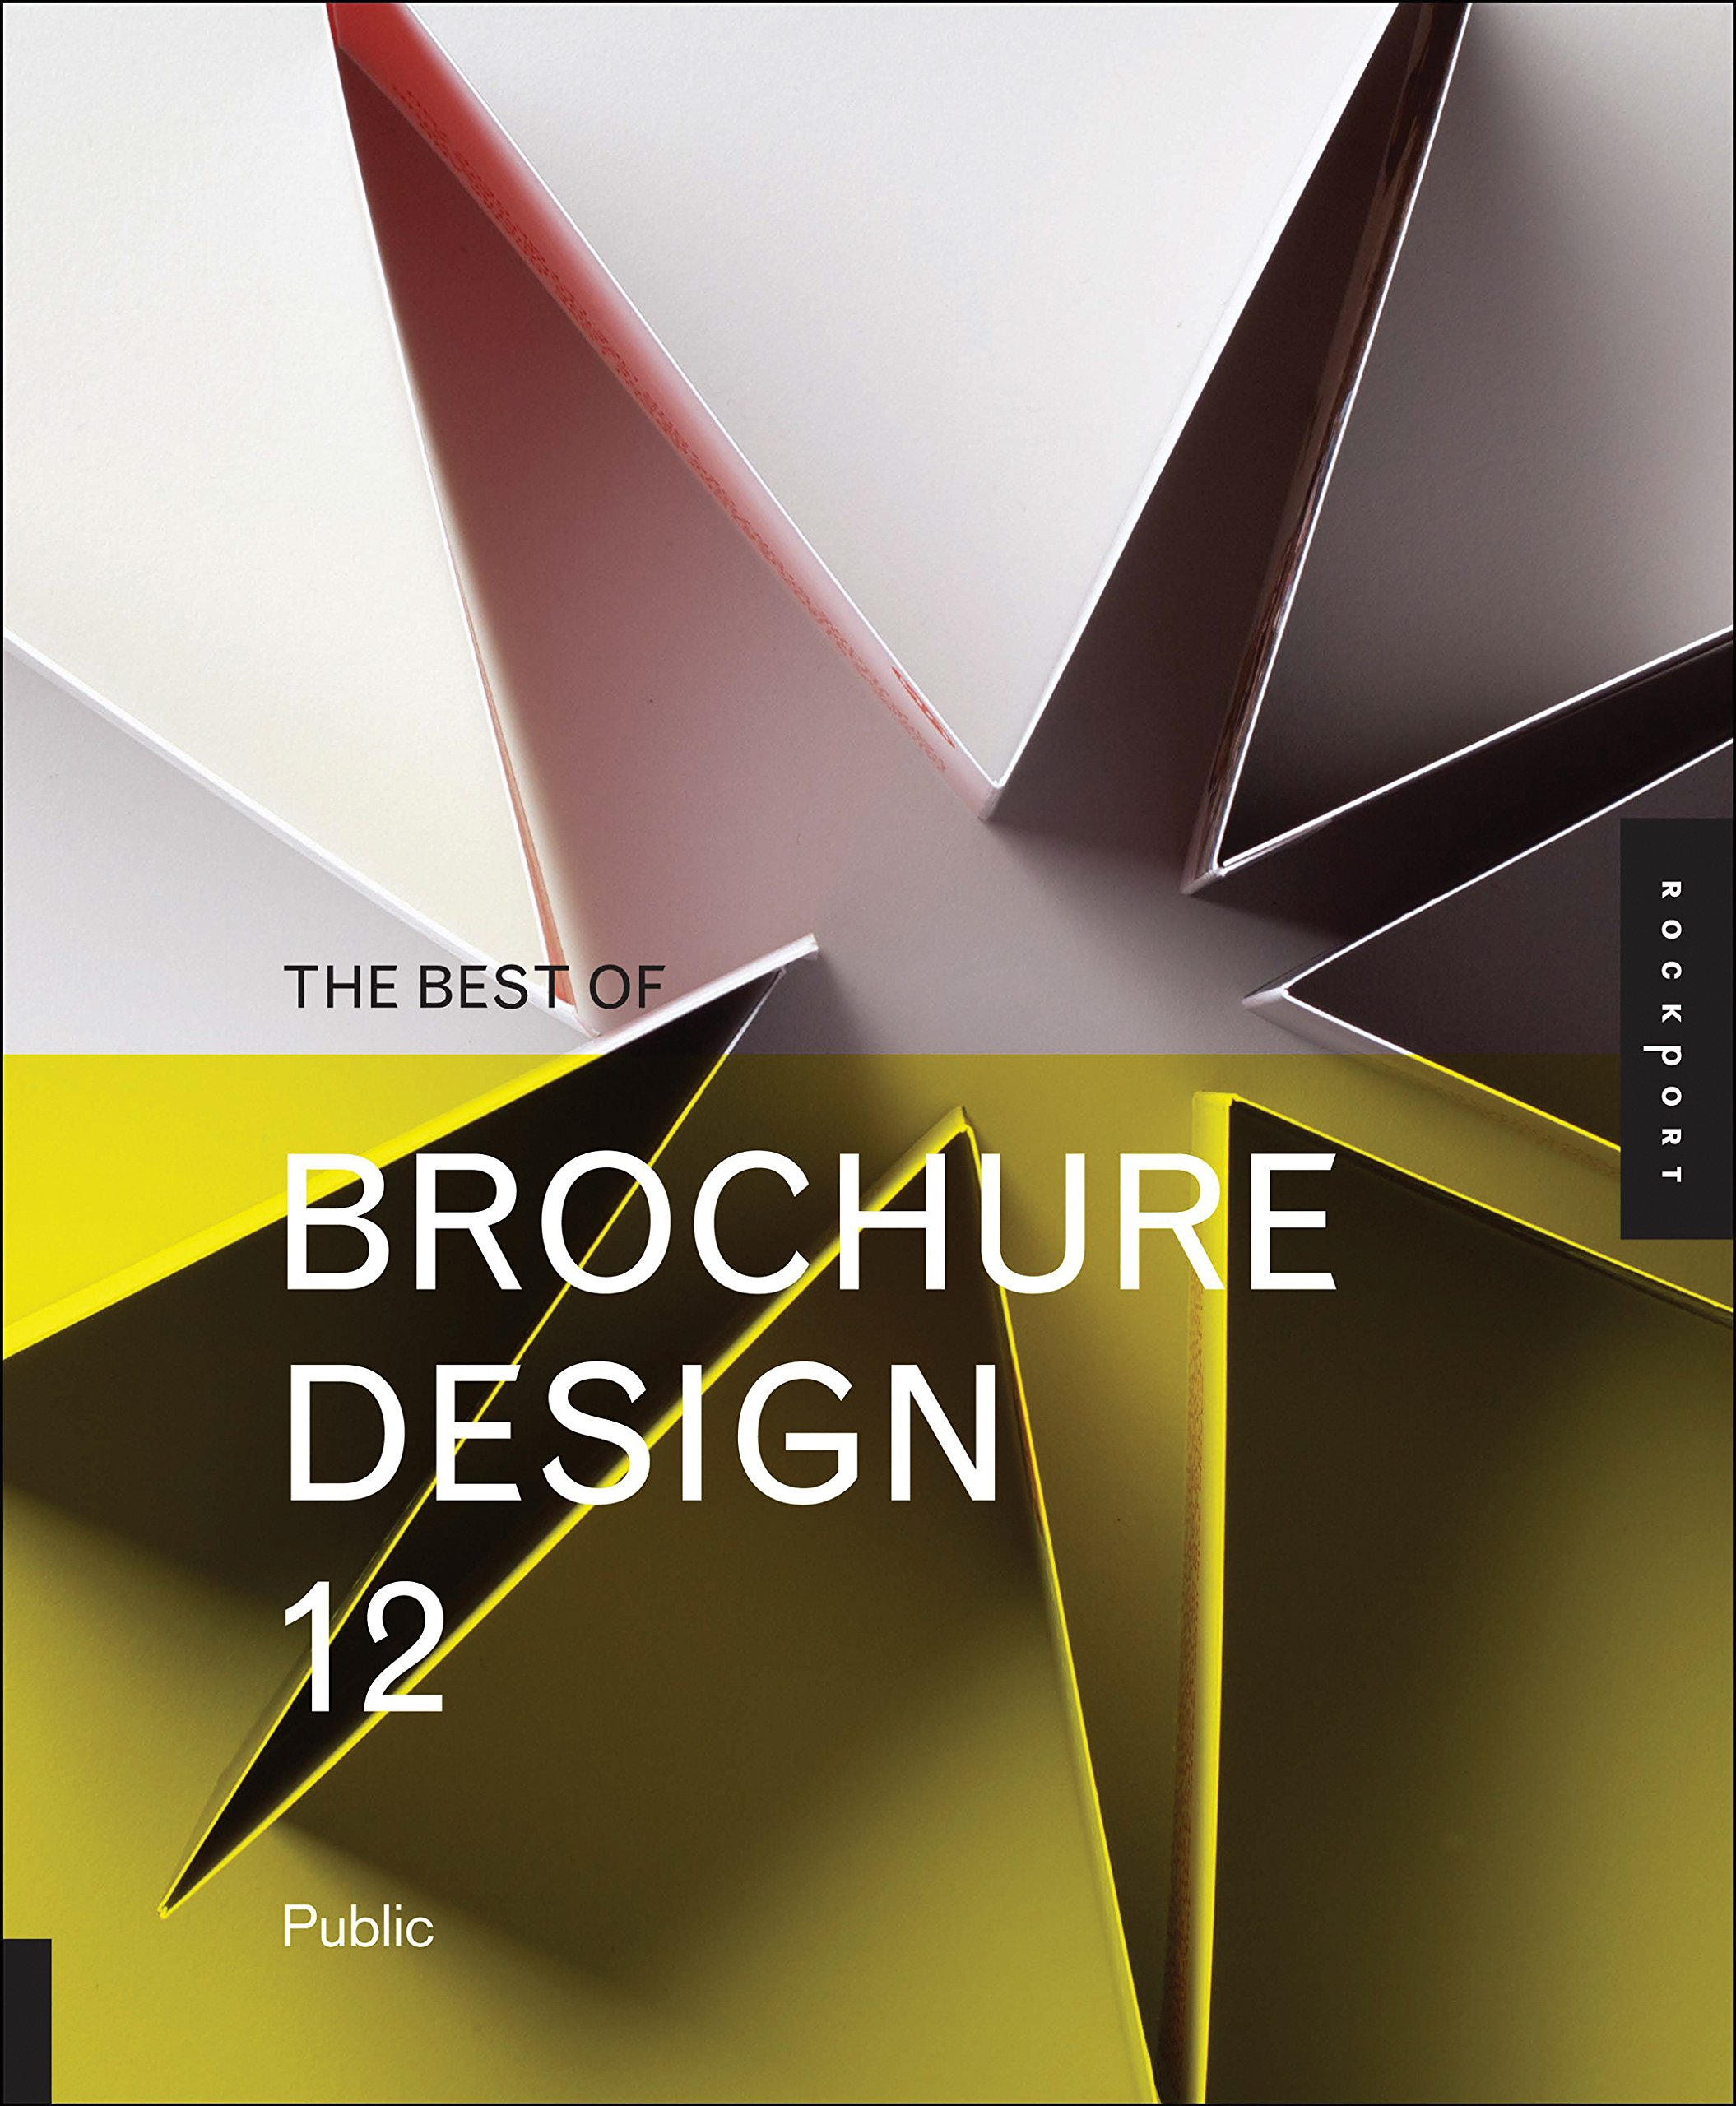 the-best-of-brochure-design-12